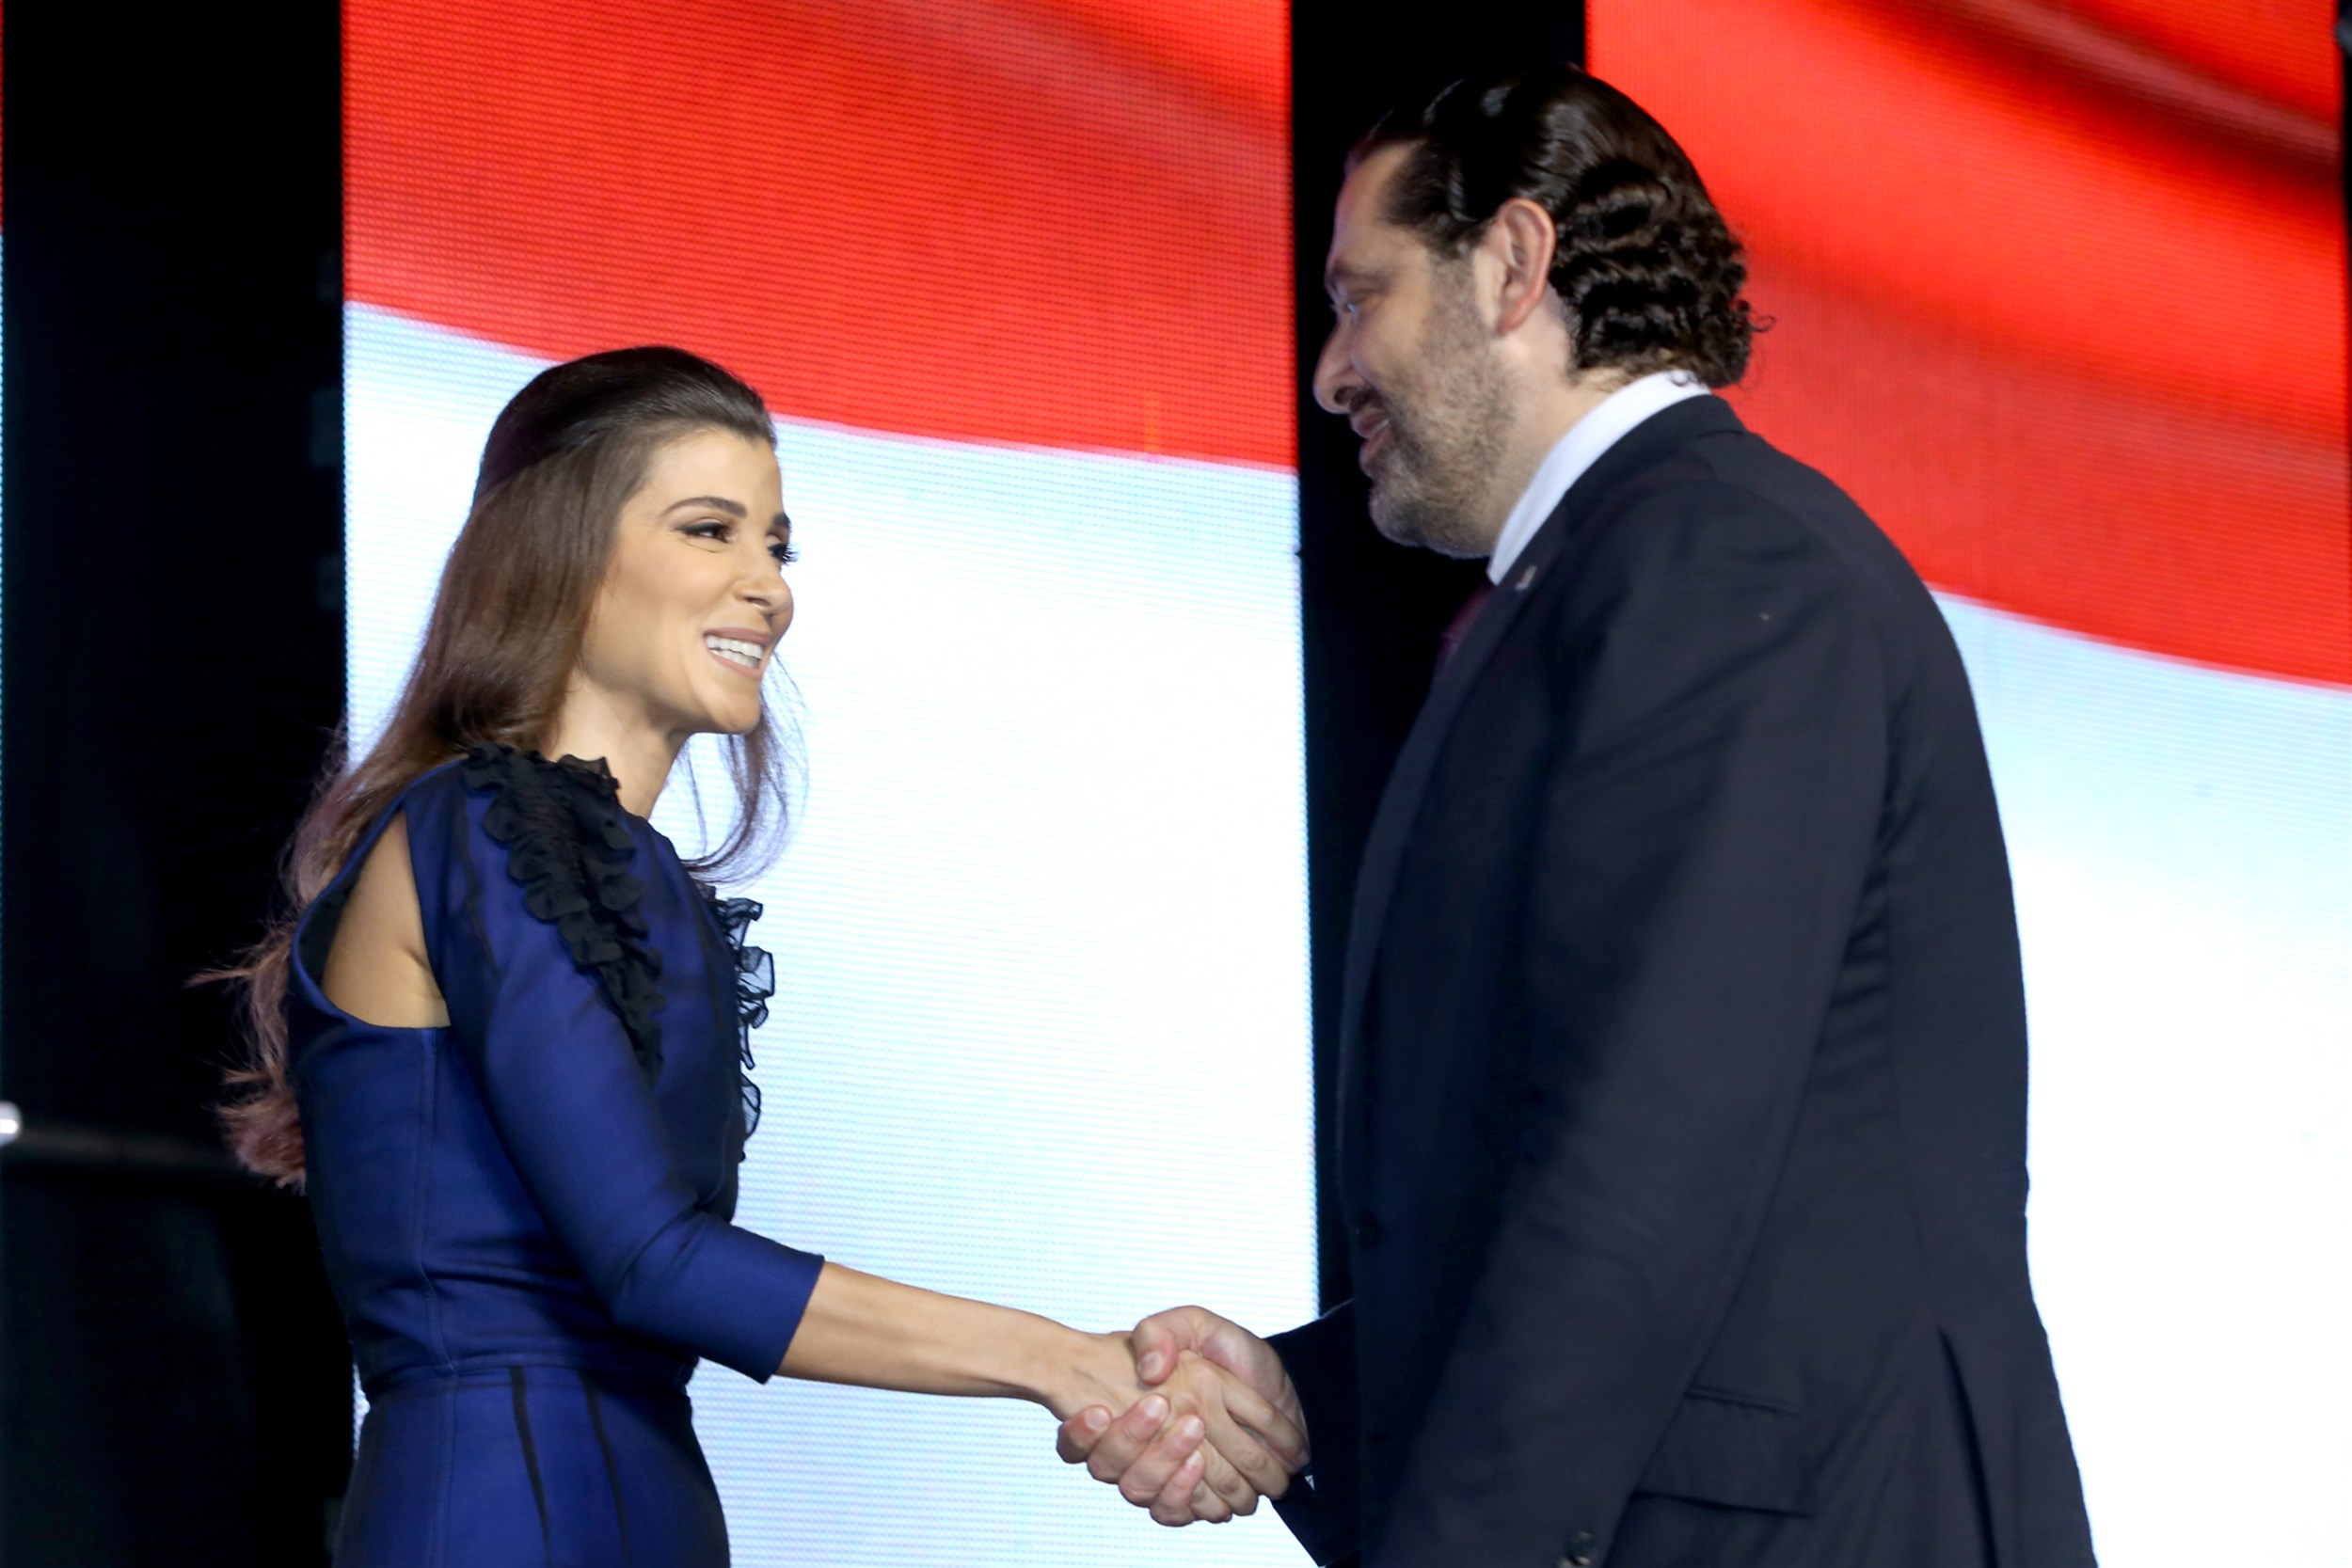 iaaf president with his excellency prime minister saad hariri as she delivers the stage for his speech.